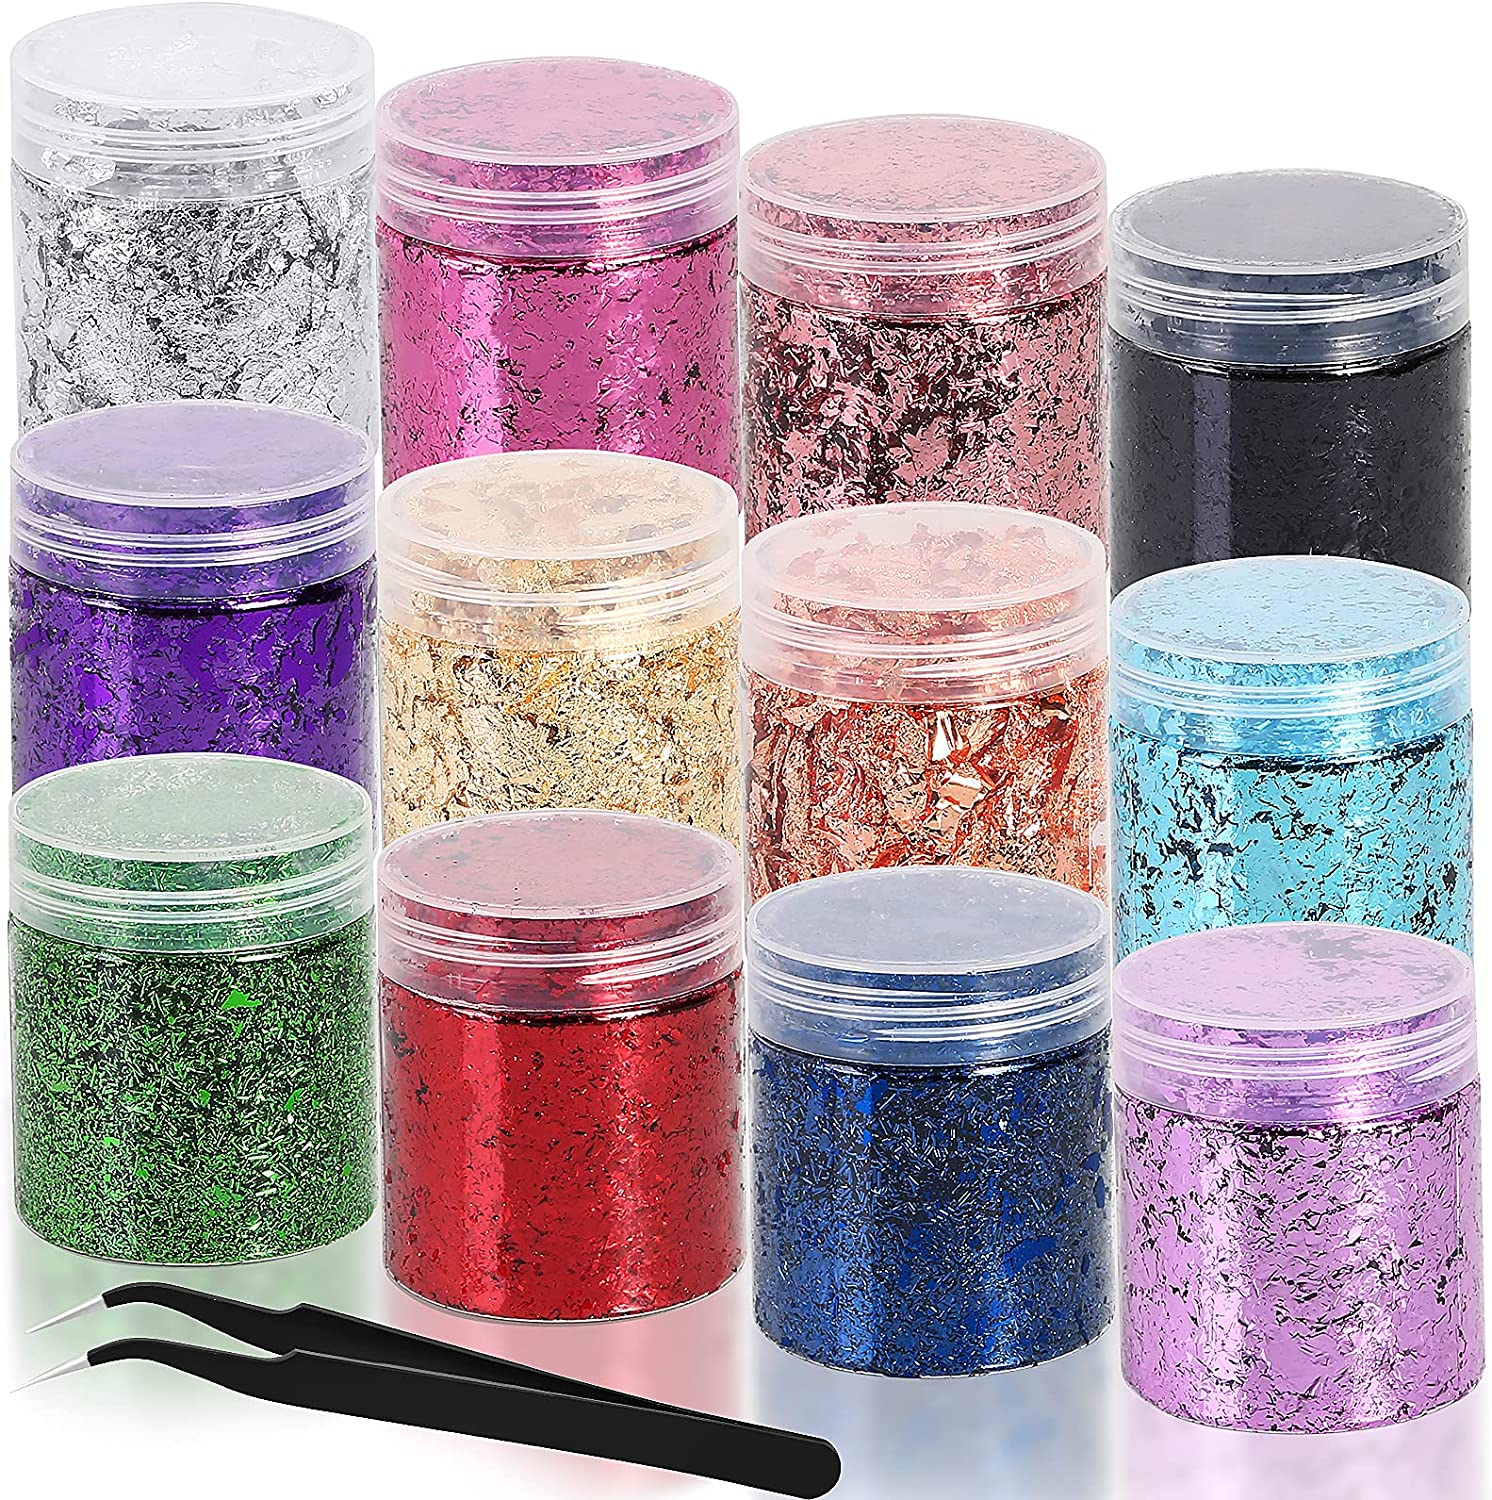 Gold Foil Flakes for Epoxy Resin, 12 Colors Metallic Gilding Flakes with Tweezers for DIY Resin Crafts, Nails Décor, Painting Arts, Slime and Resin Jewelry Making Accessories